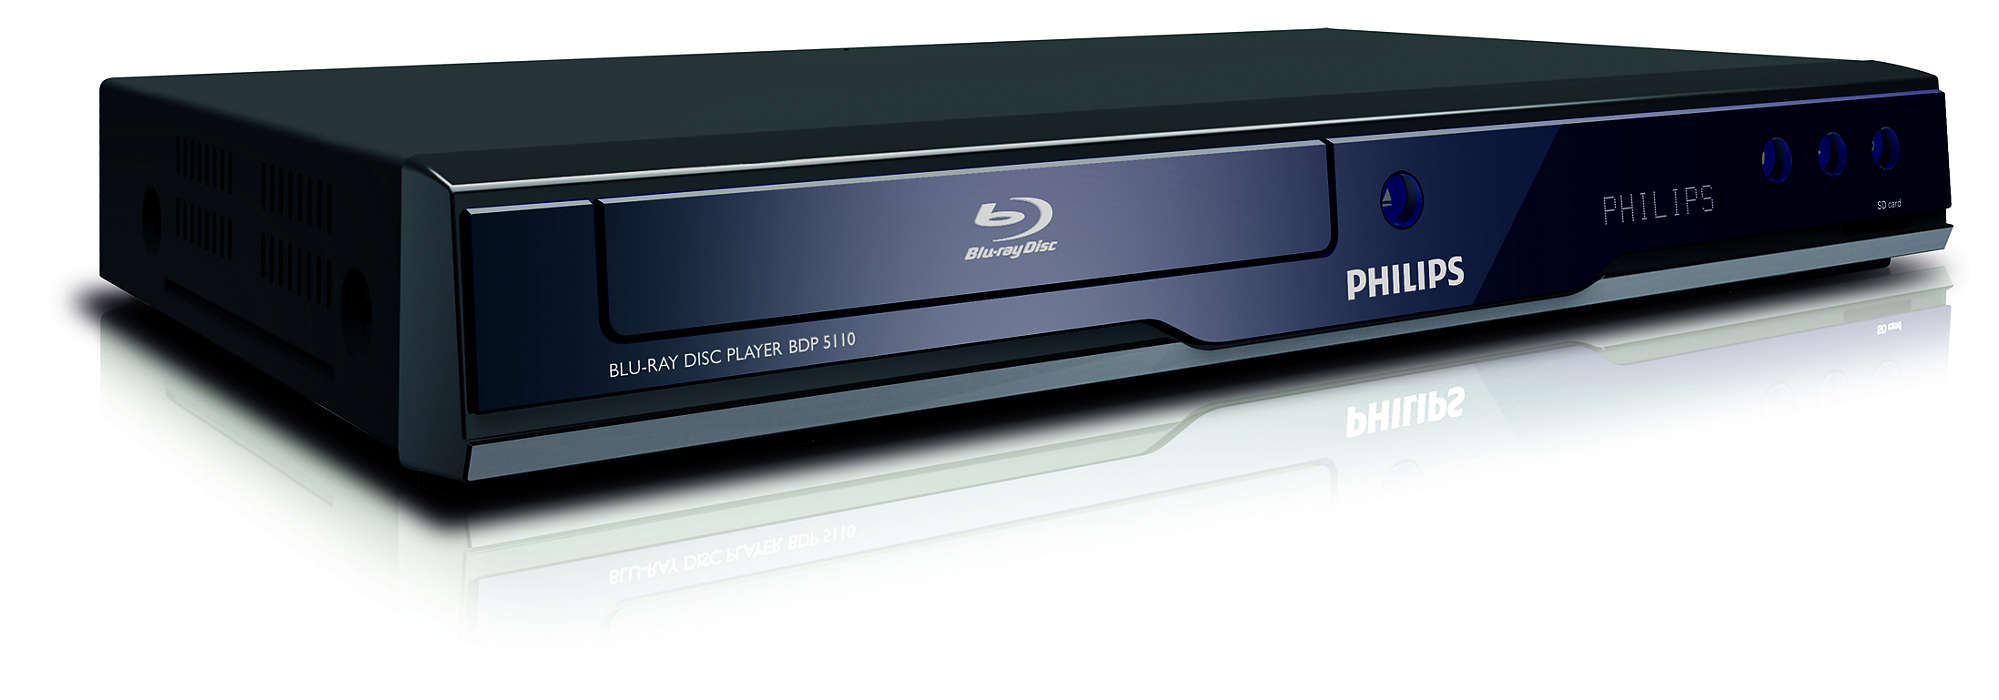 Lisez vos disques Blu-ray